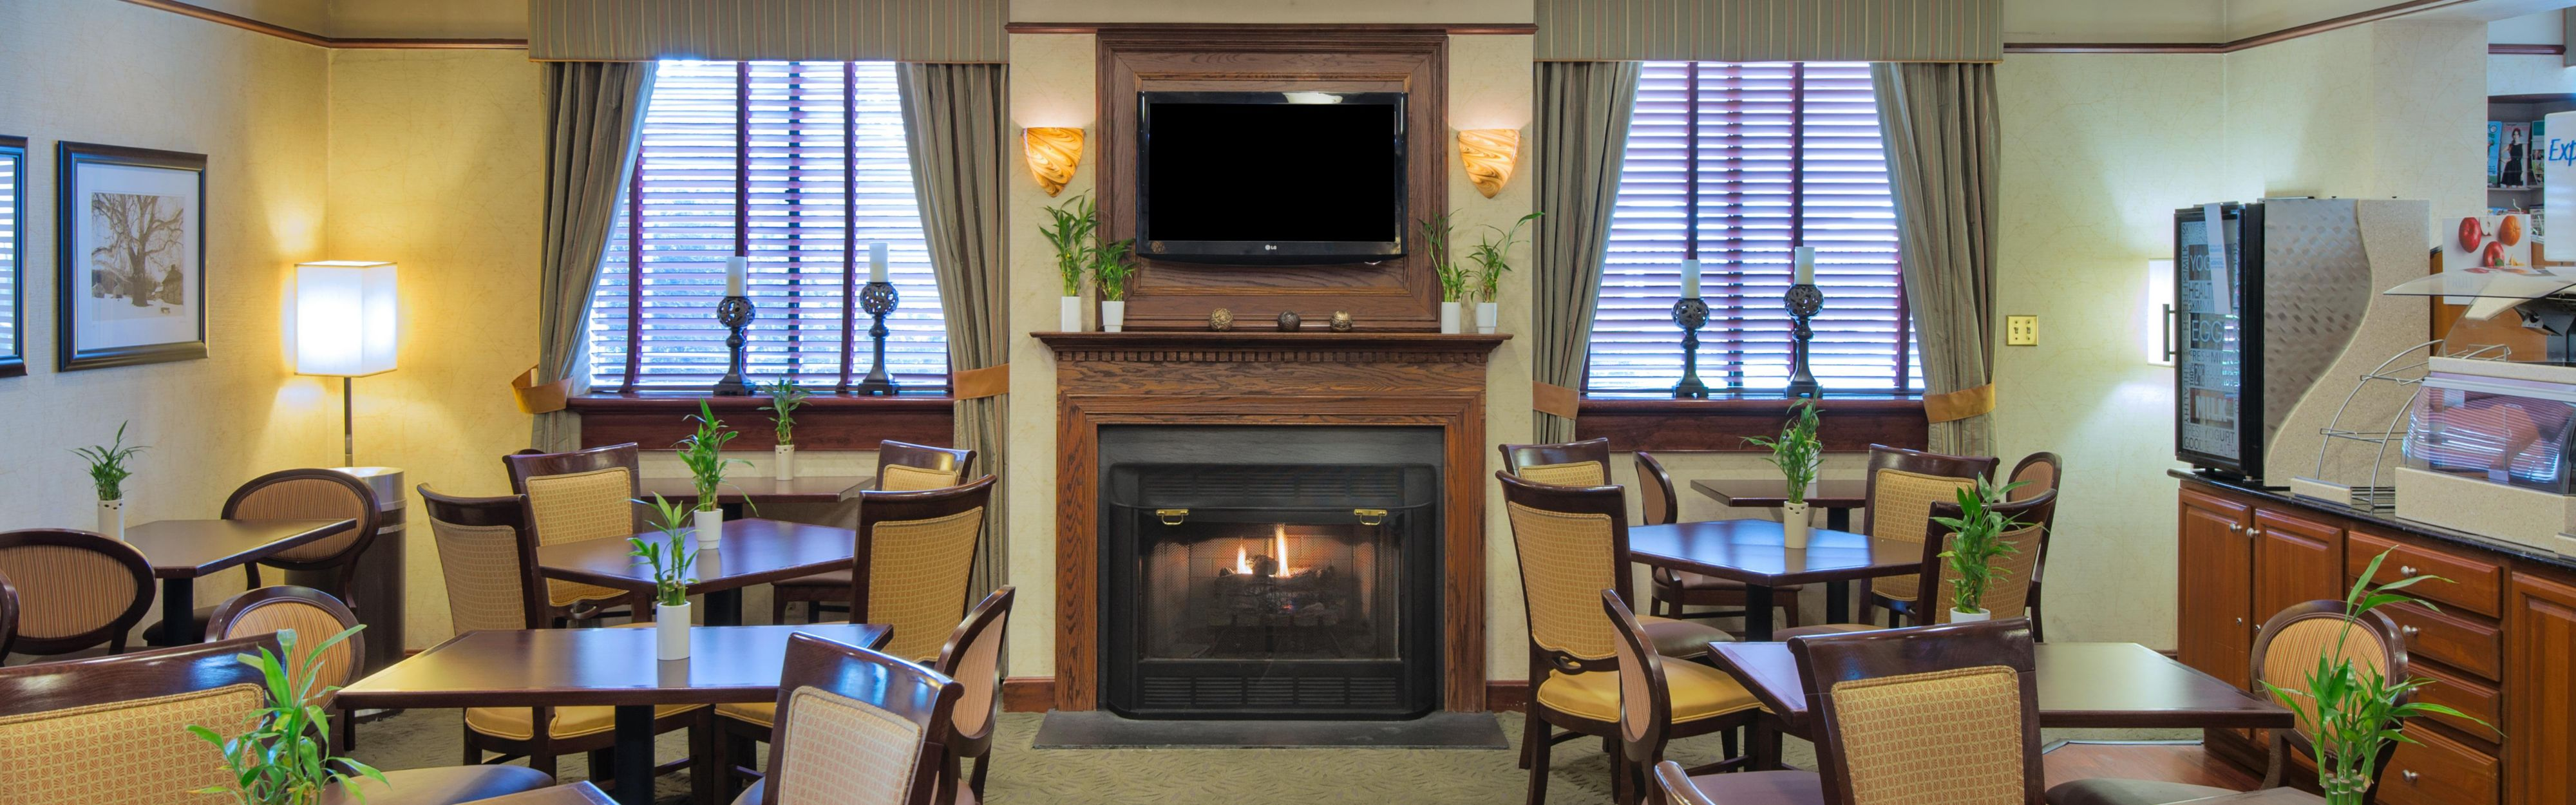 Holiday Inn Express Exton - Great Valley image 3